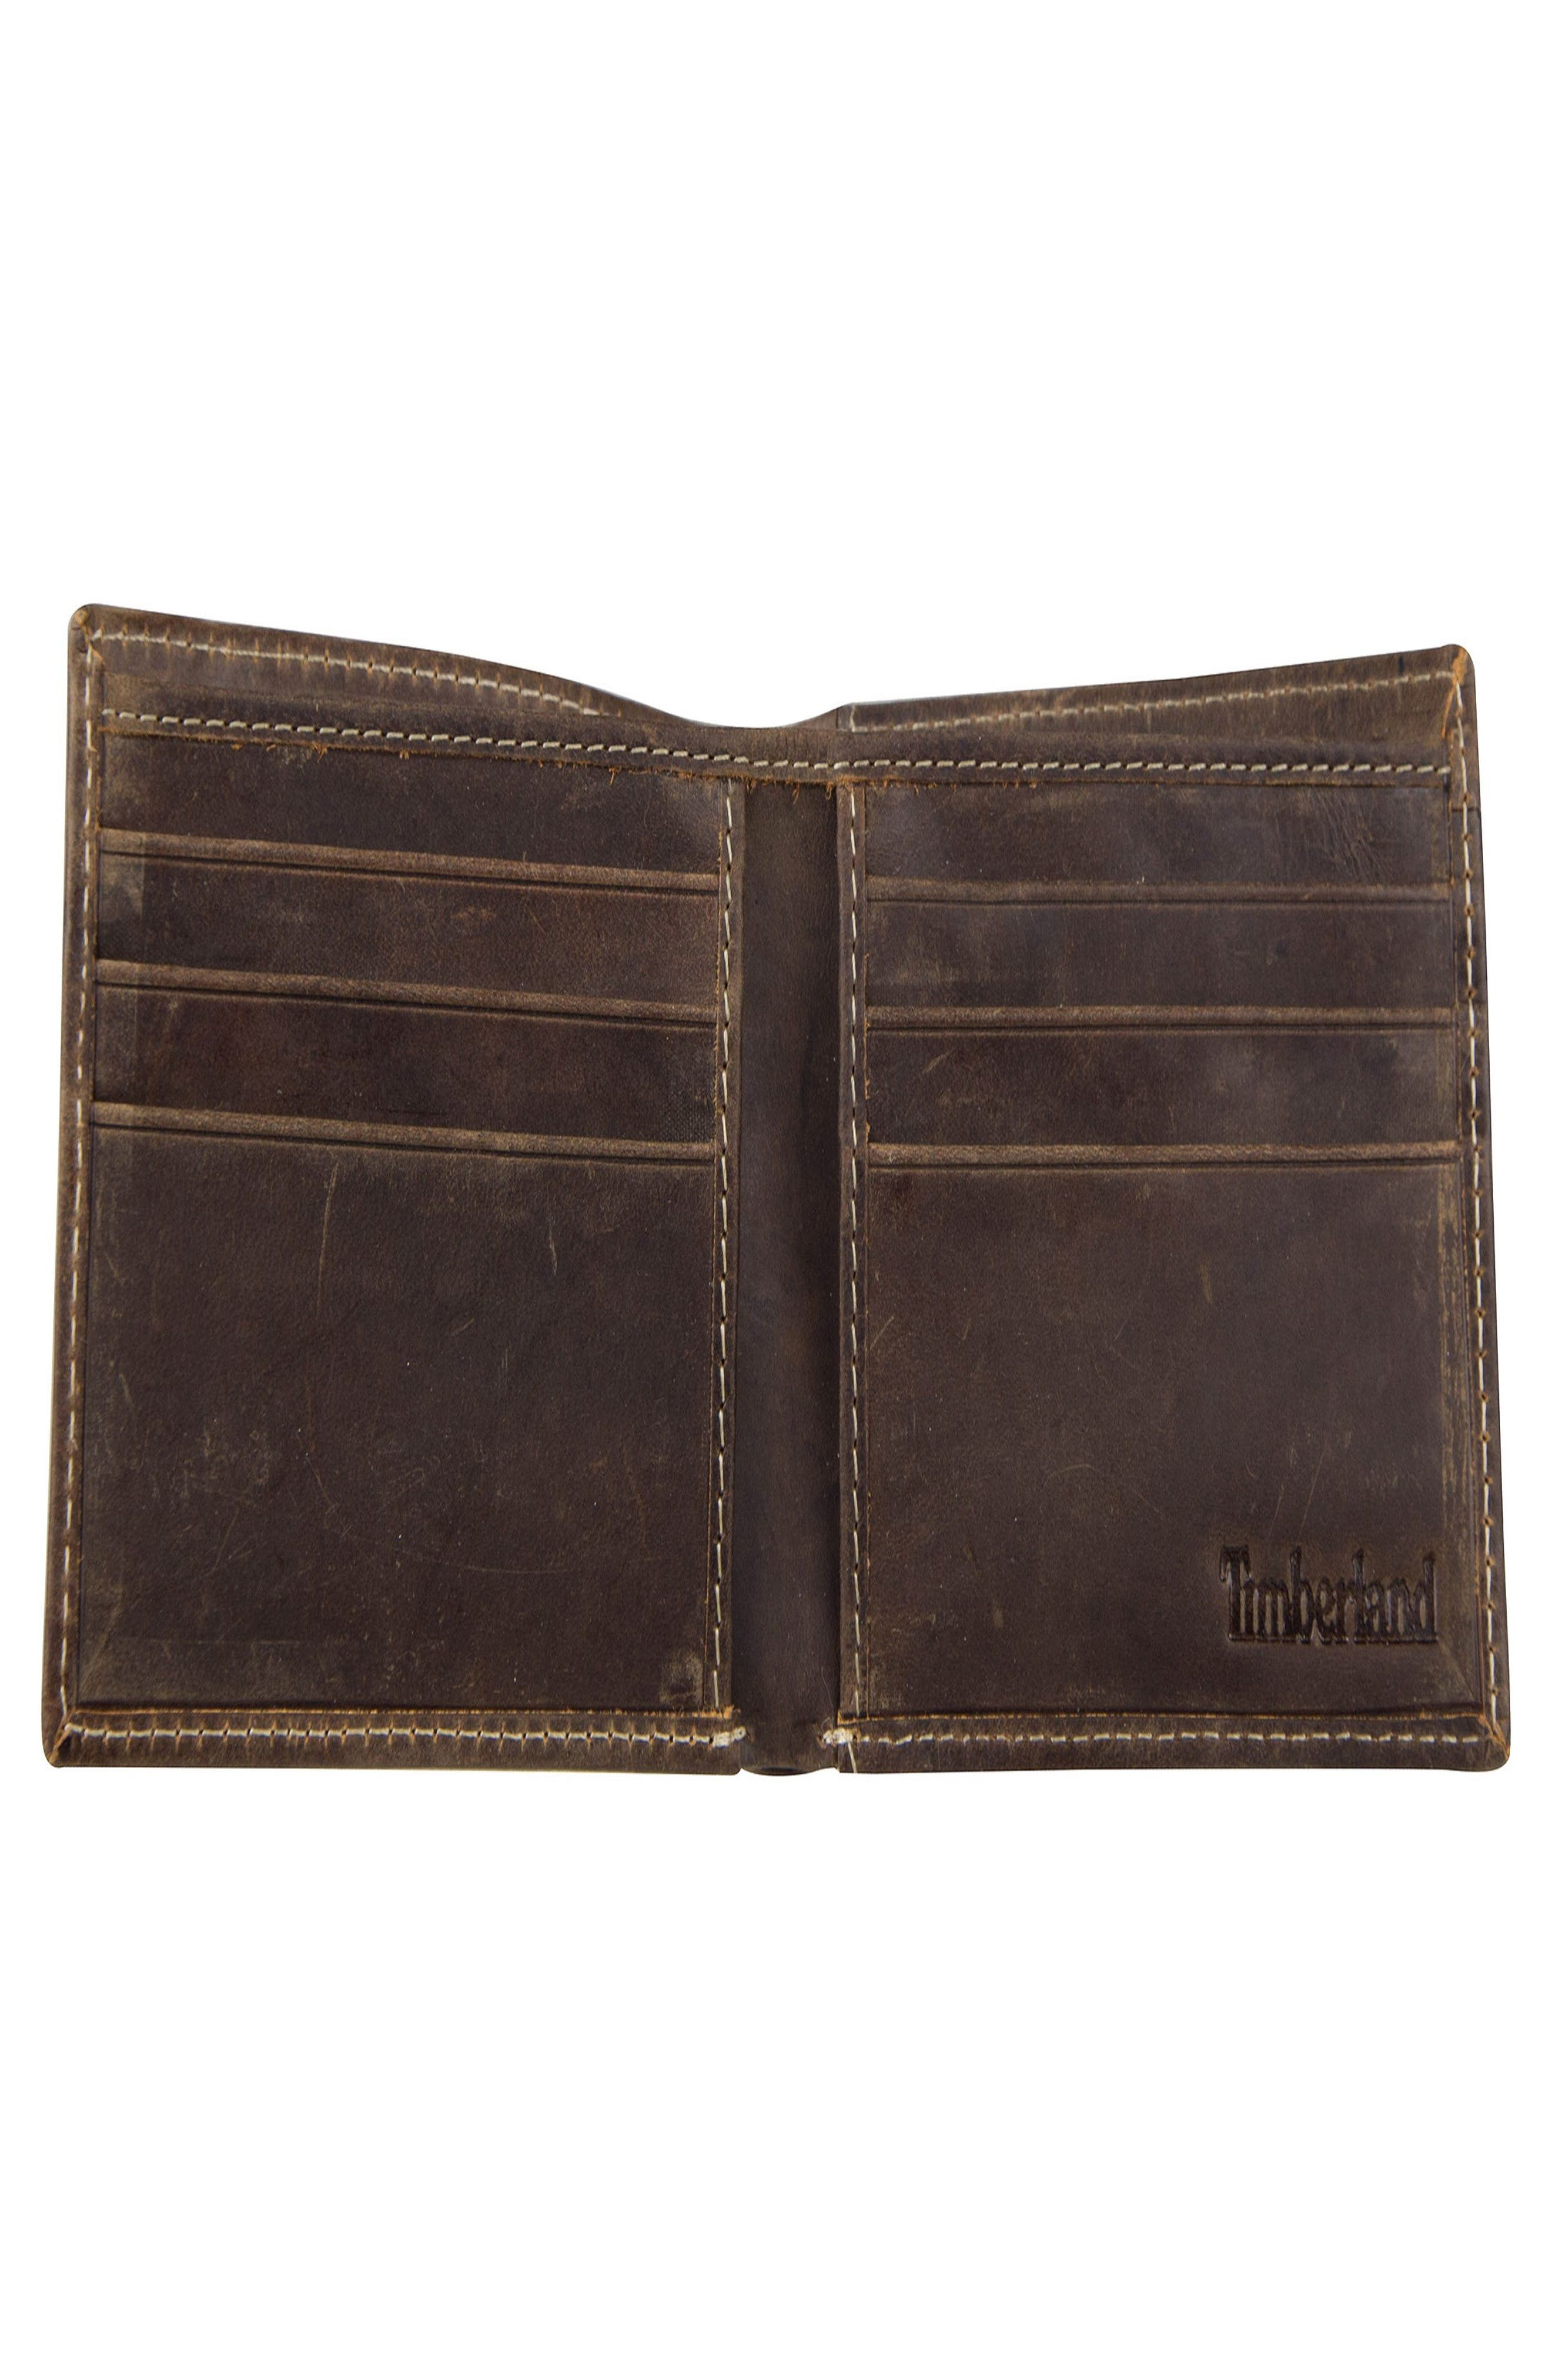 TIMBERLAND,                             Distressed Leather Wallet,                             Alternate thumbnail 2, color,                             200